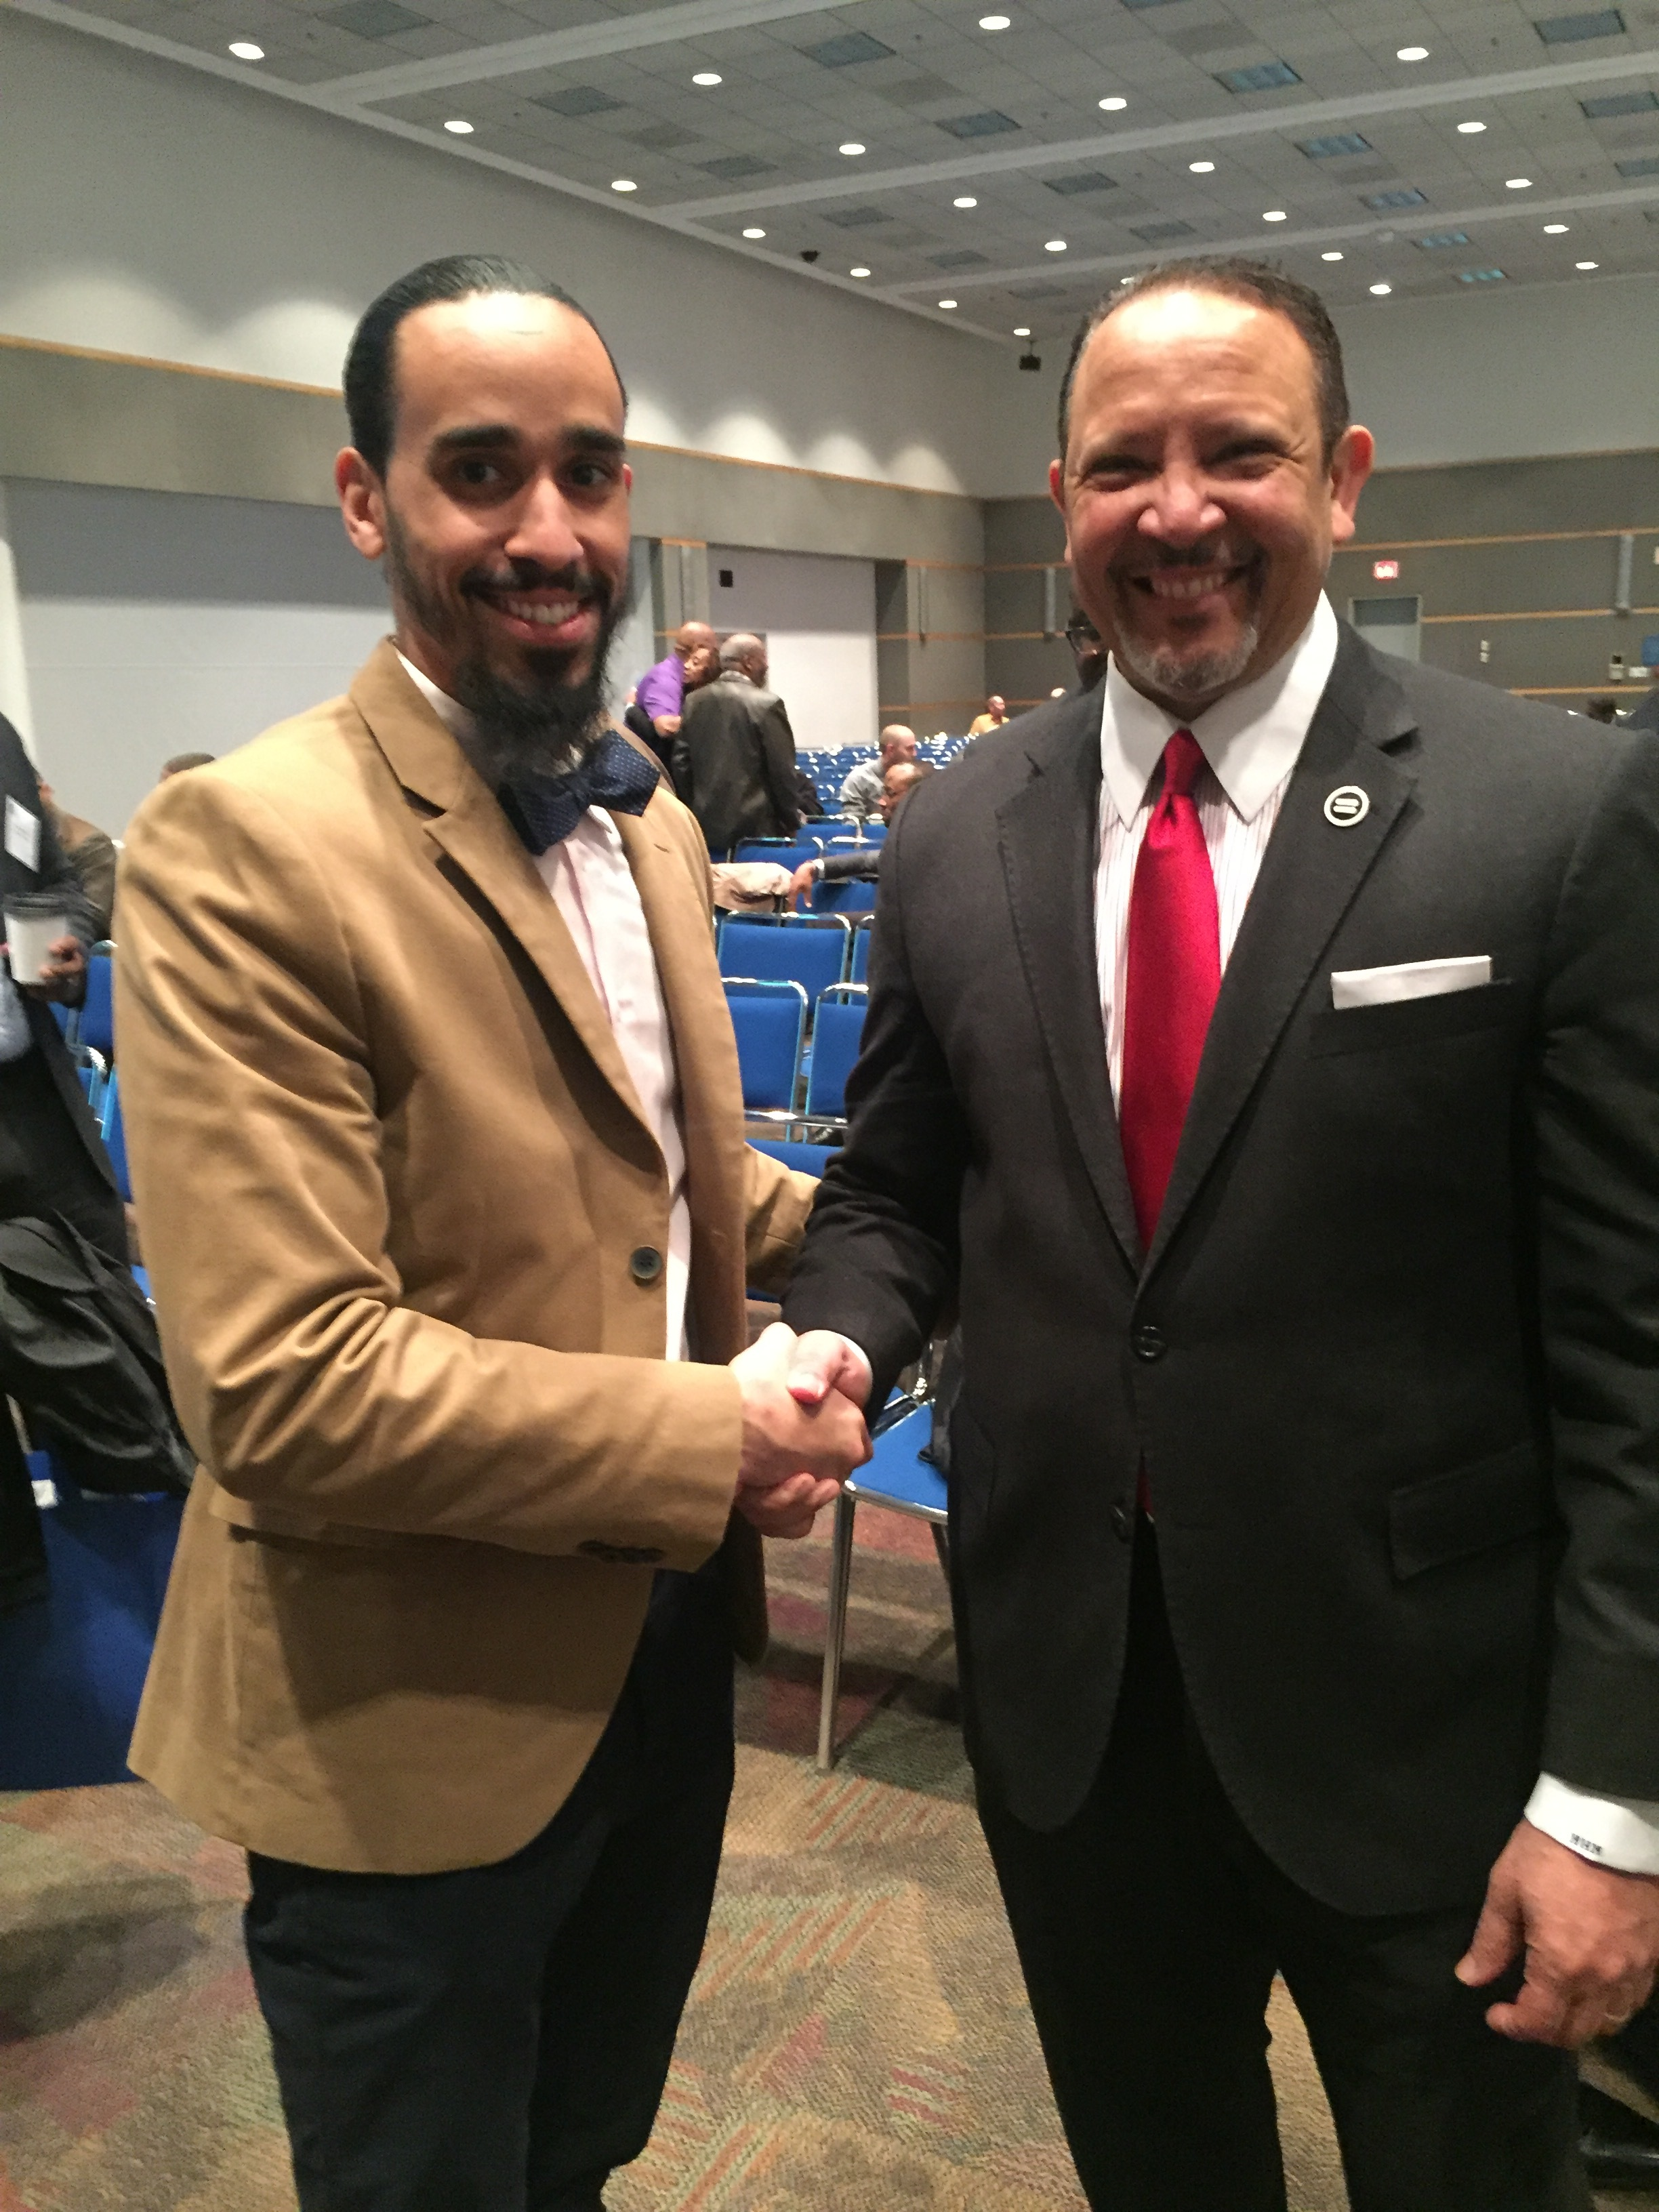 Urban League President, Marc Morial